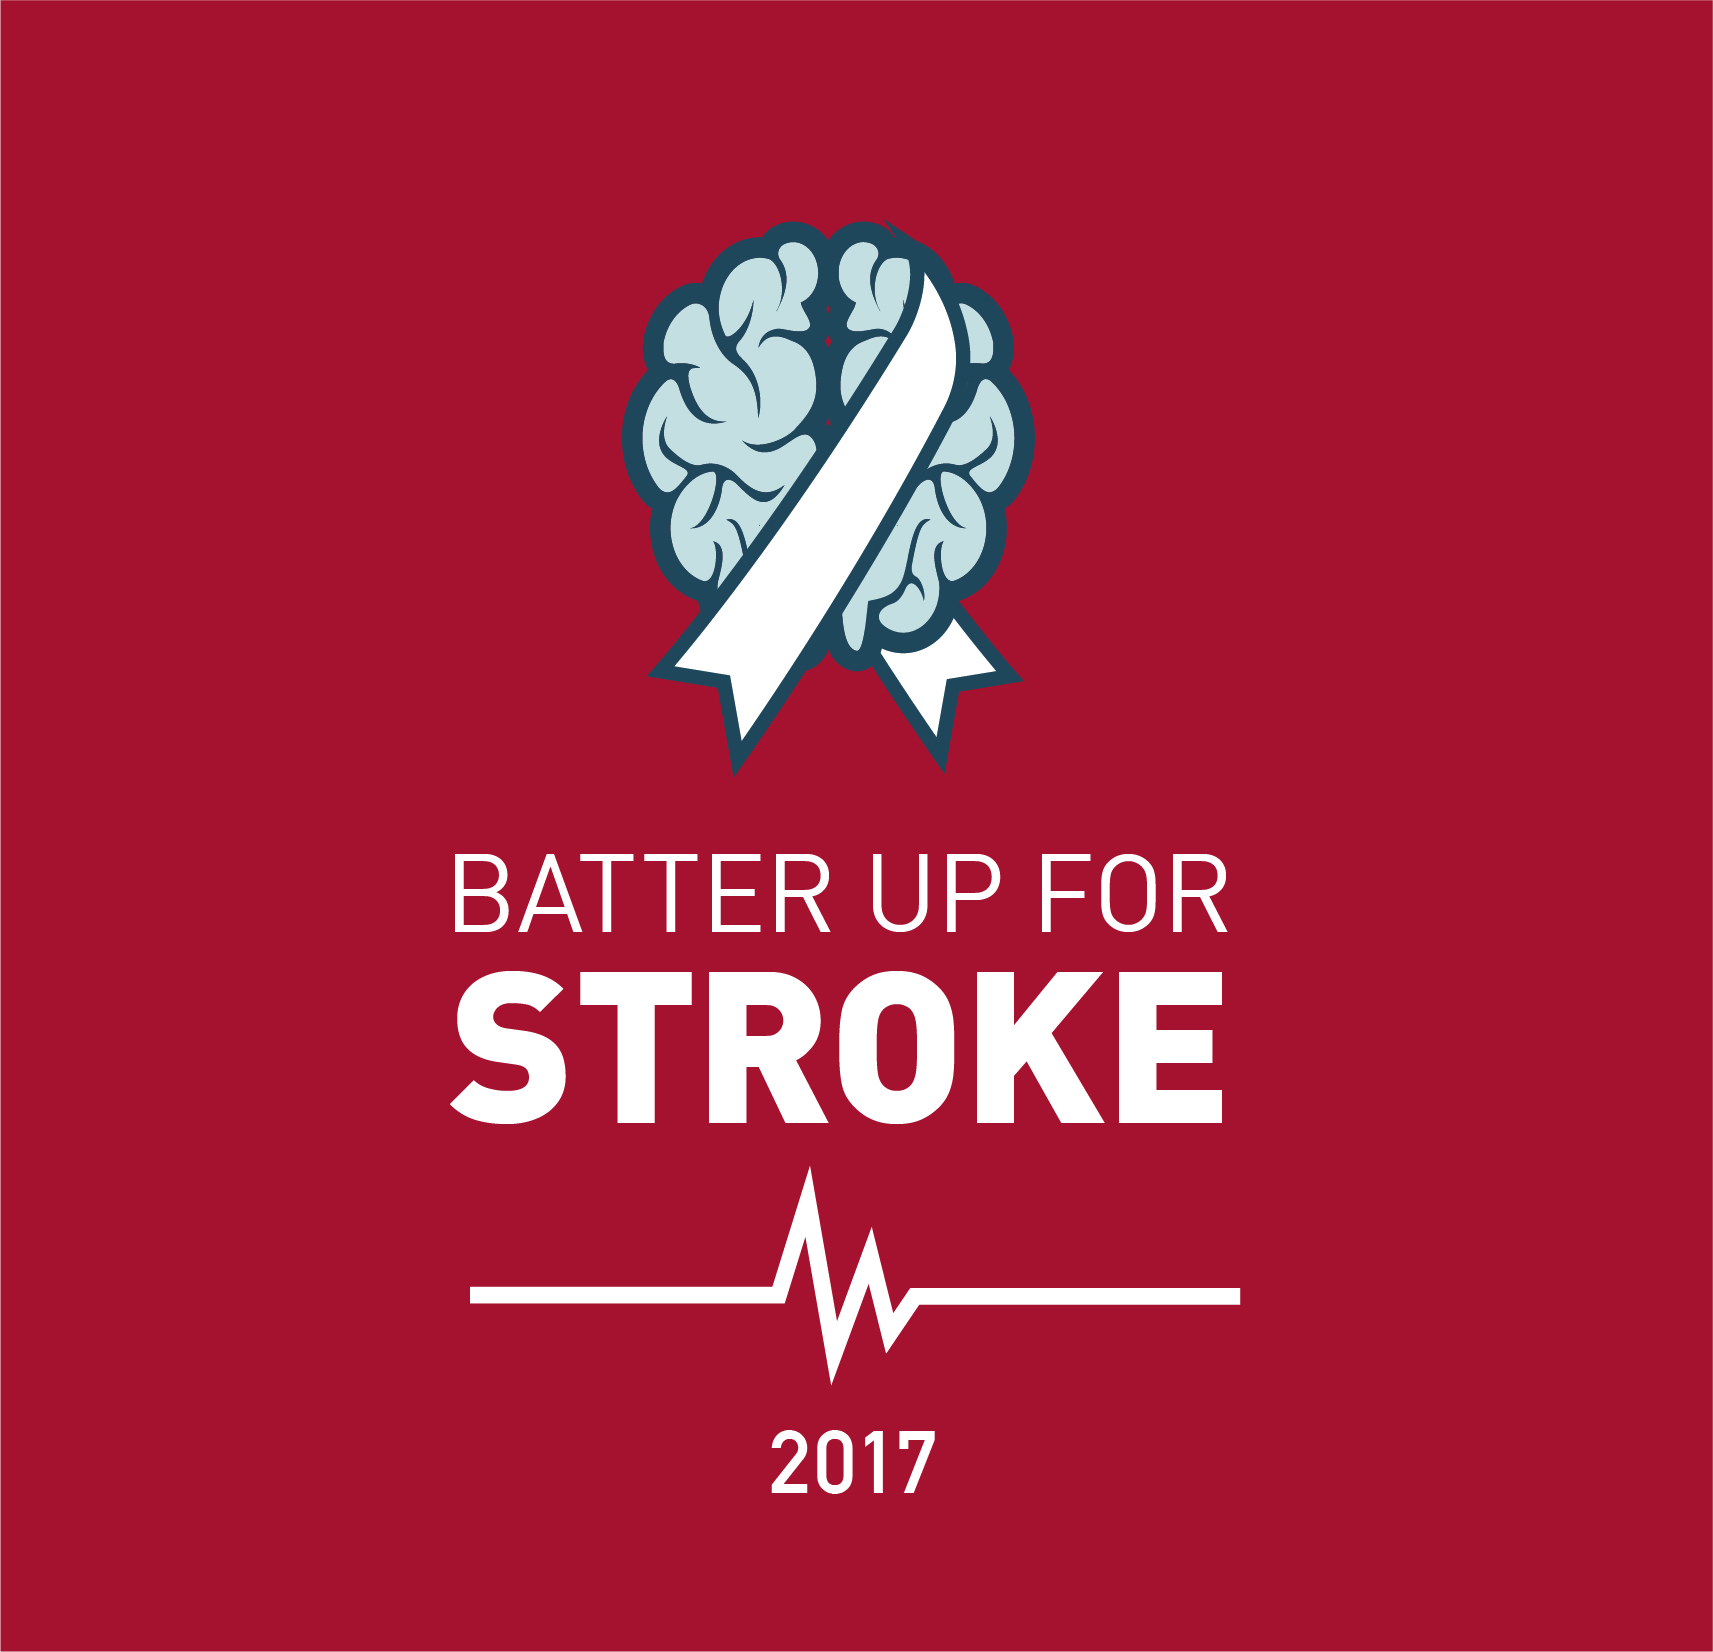 https://www.joeniekrofoundation.com/ways-to-give/brain-aneurysm/attachment/batter-up-for-stroke_logo_final-03/